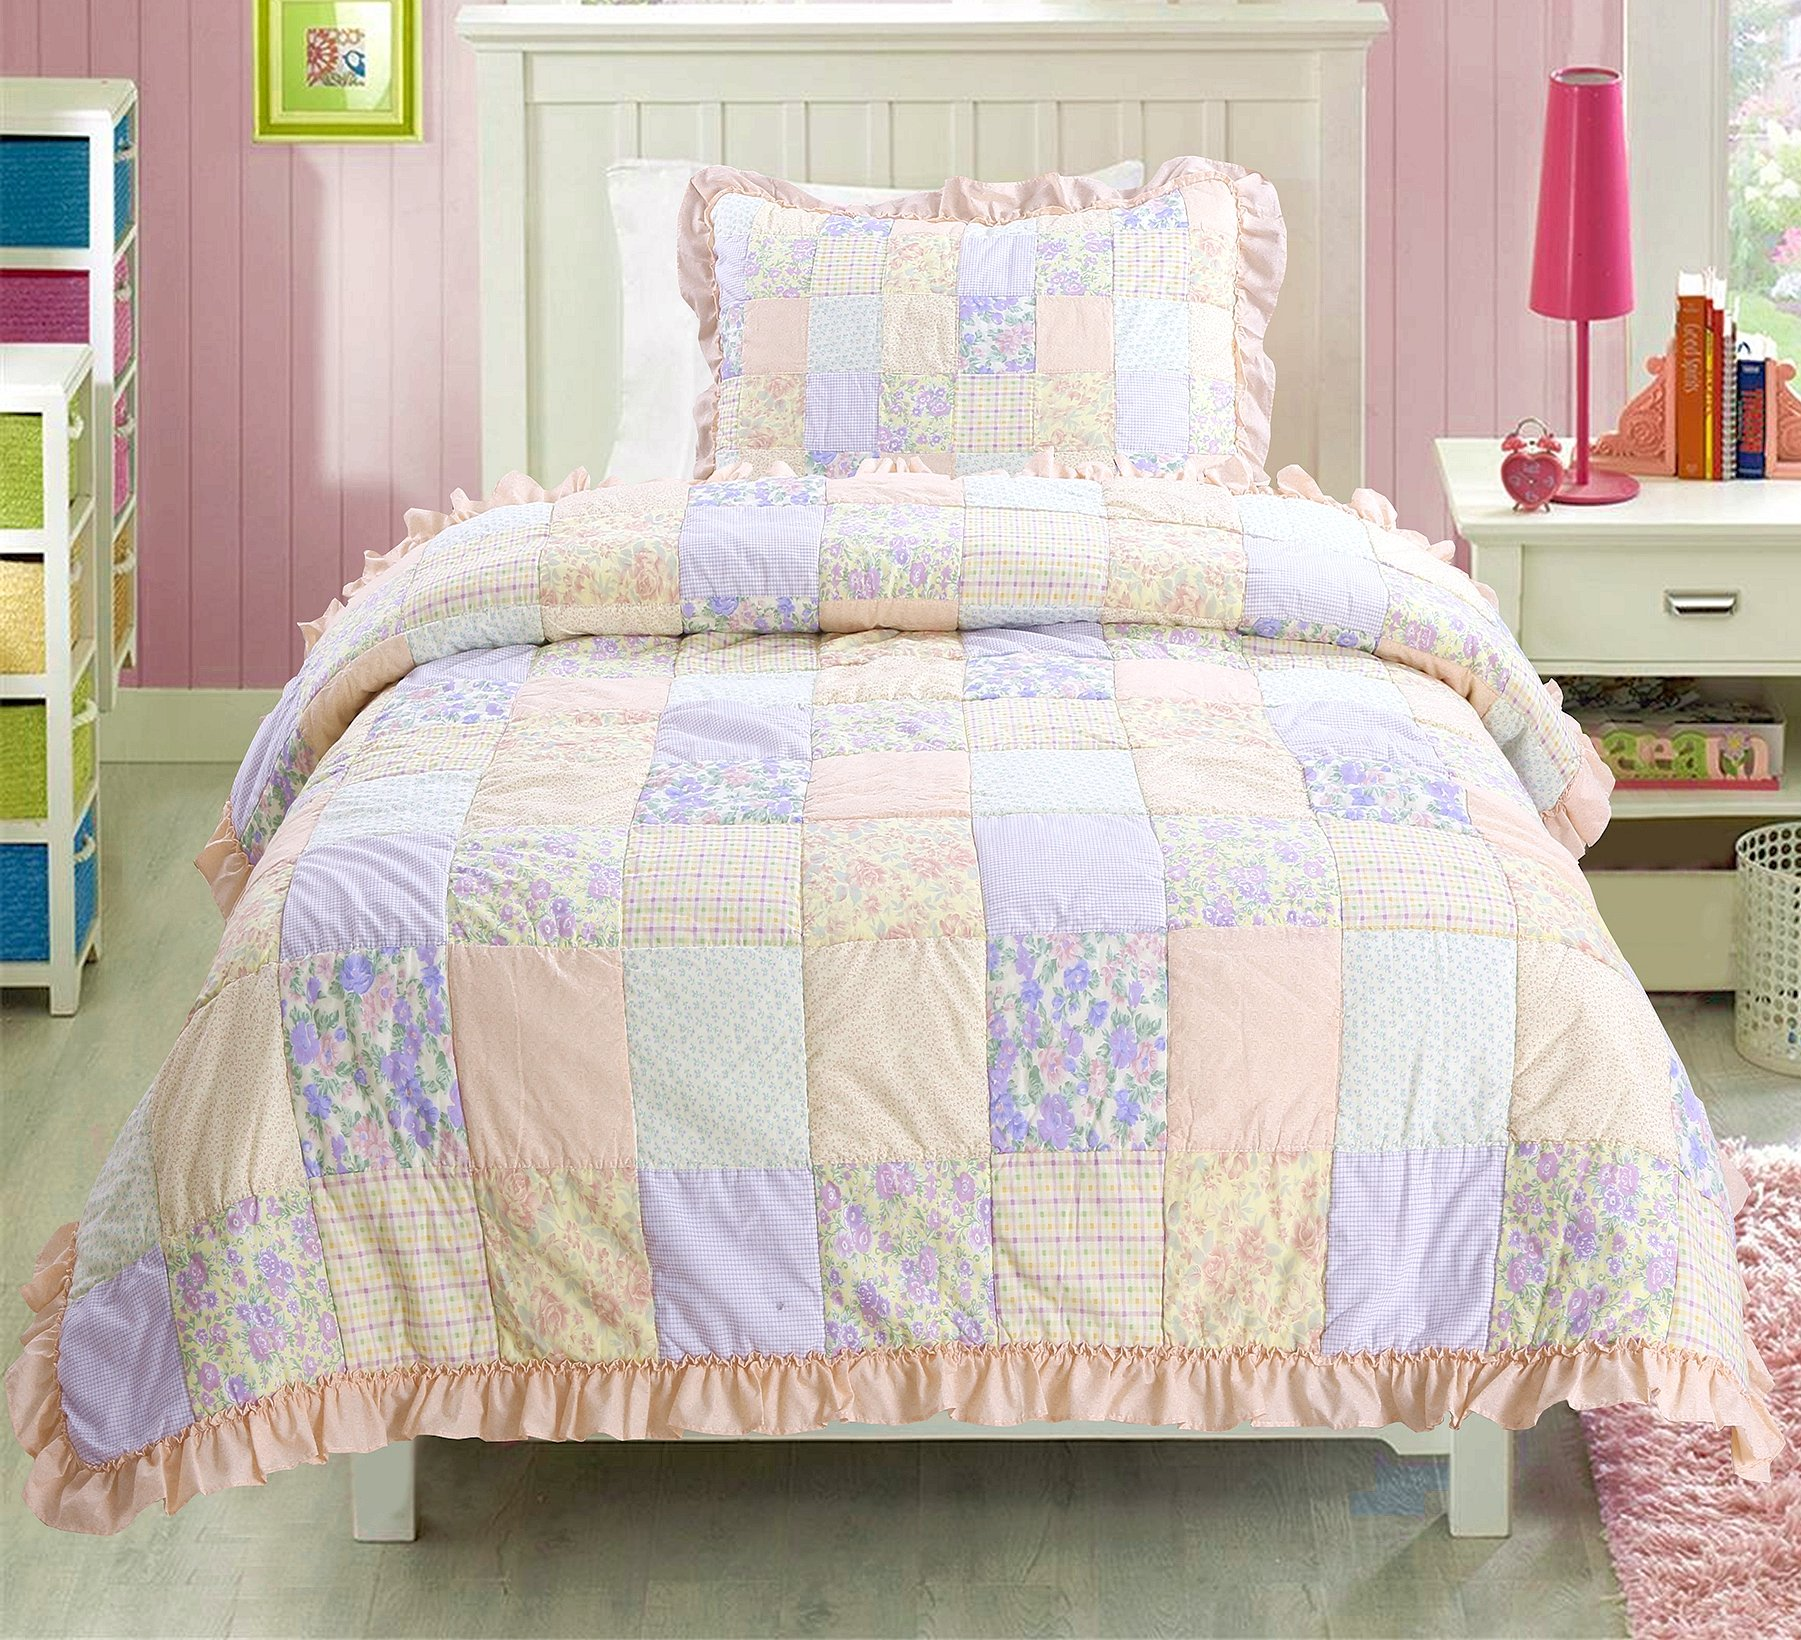 Cozy Line Home Fashions Peach Lace Floral Pink Green Orchid Rose Flower Printed Patchwork 100% Cotton Quilt Bedding Set Bedspread Coverlet for Baby/Little Girls (Peach, Queen - 2 Piece) by Cozy Line Home Fashions